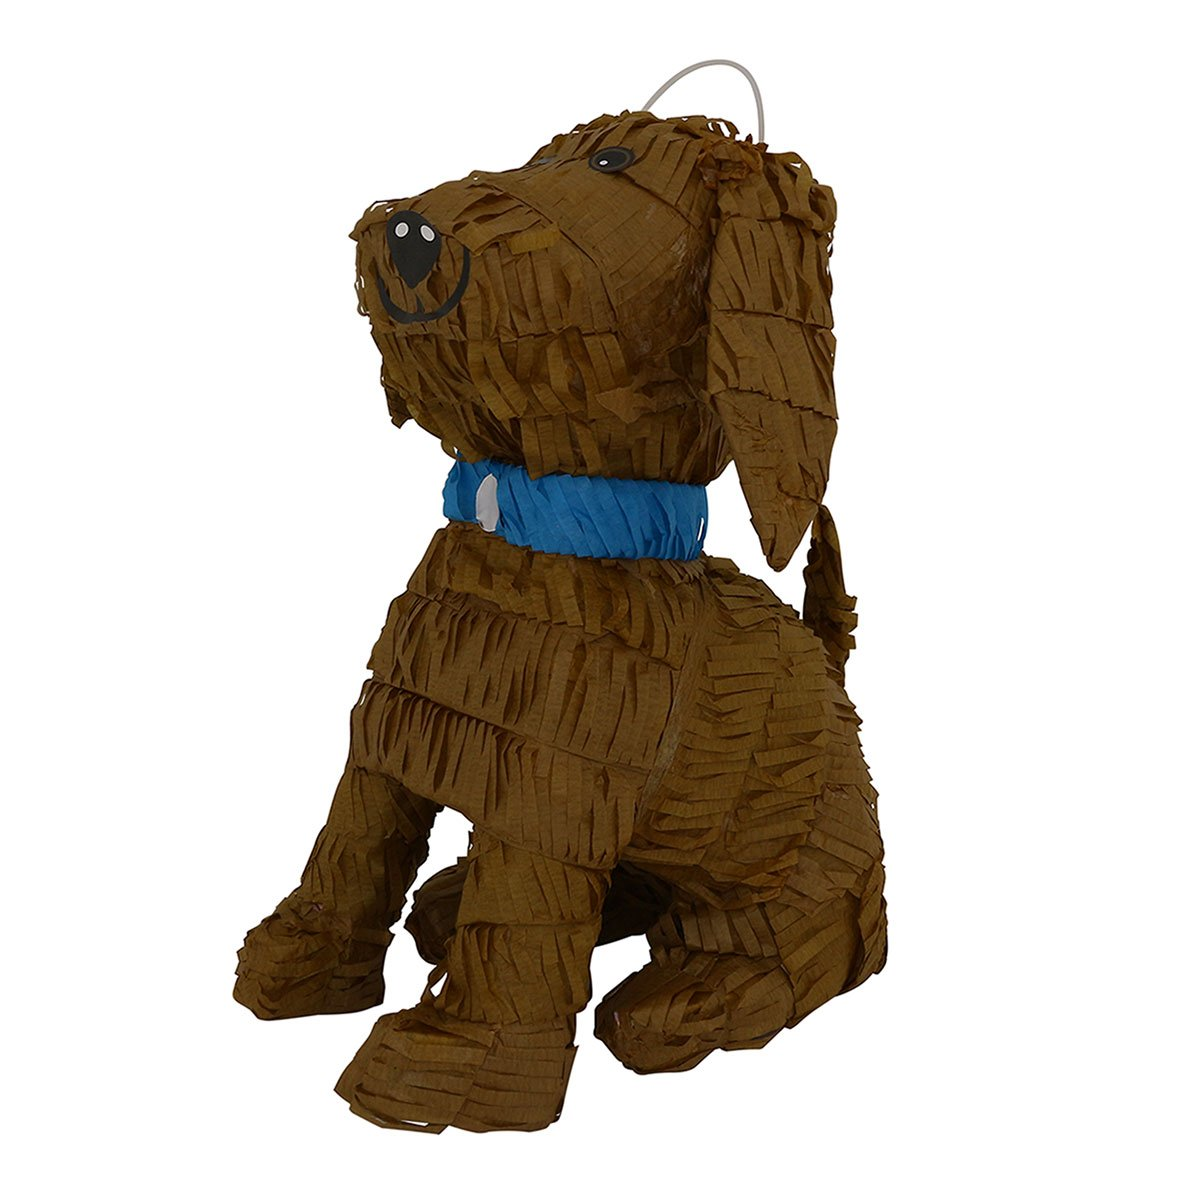 LYTIO – Brown Puppy Dog Shaped Pinata with Blue Details (Piñata) Ideal for Animal Parties, Center Piece, Photo Prop and Décor